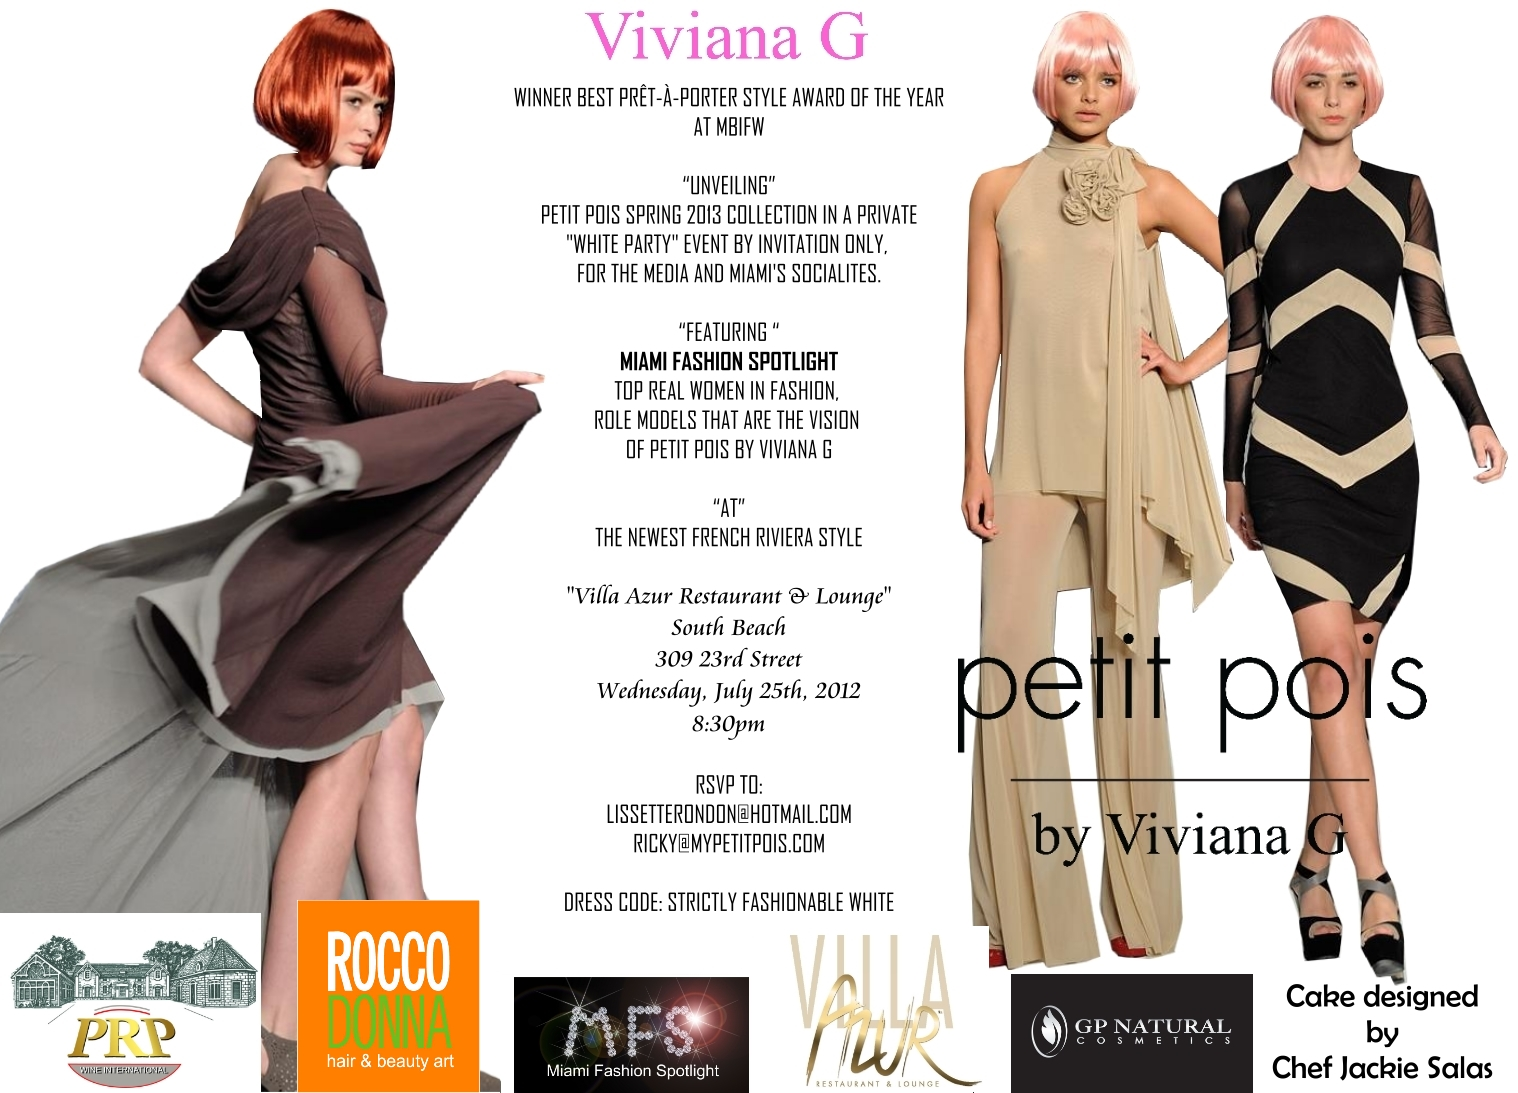 Fashion Designer Viviana G Winner Of Best Pret A Porter Style Award At Miami Fashion Week Unveils Her Petit Pois Spring 2013 Collection Miami Fashion Spotlight